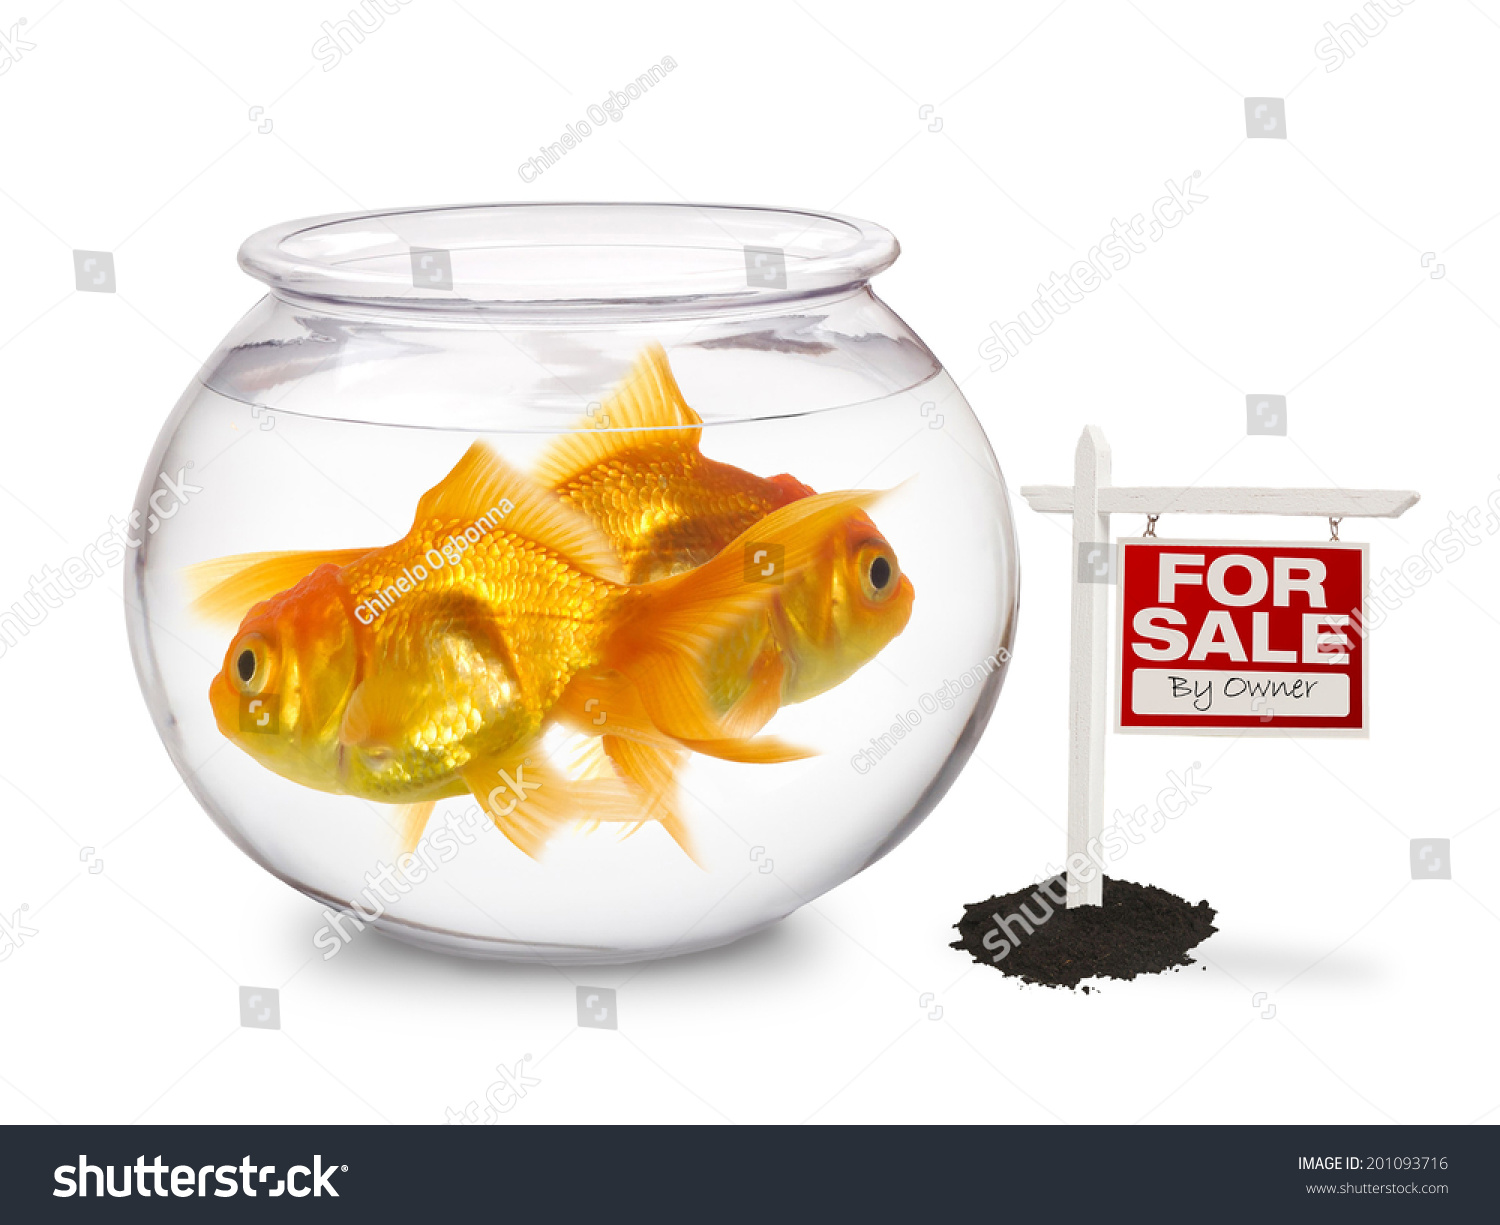 Gold Fish Bowl For Sale Stock Photo 201093716 Shutterstock